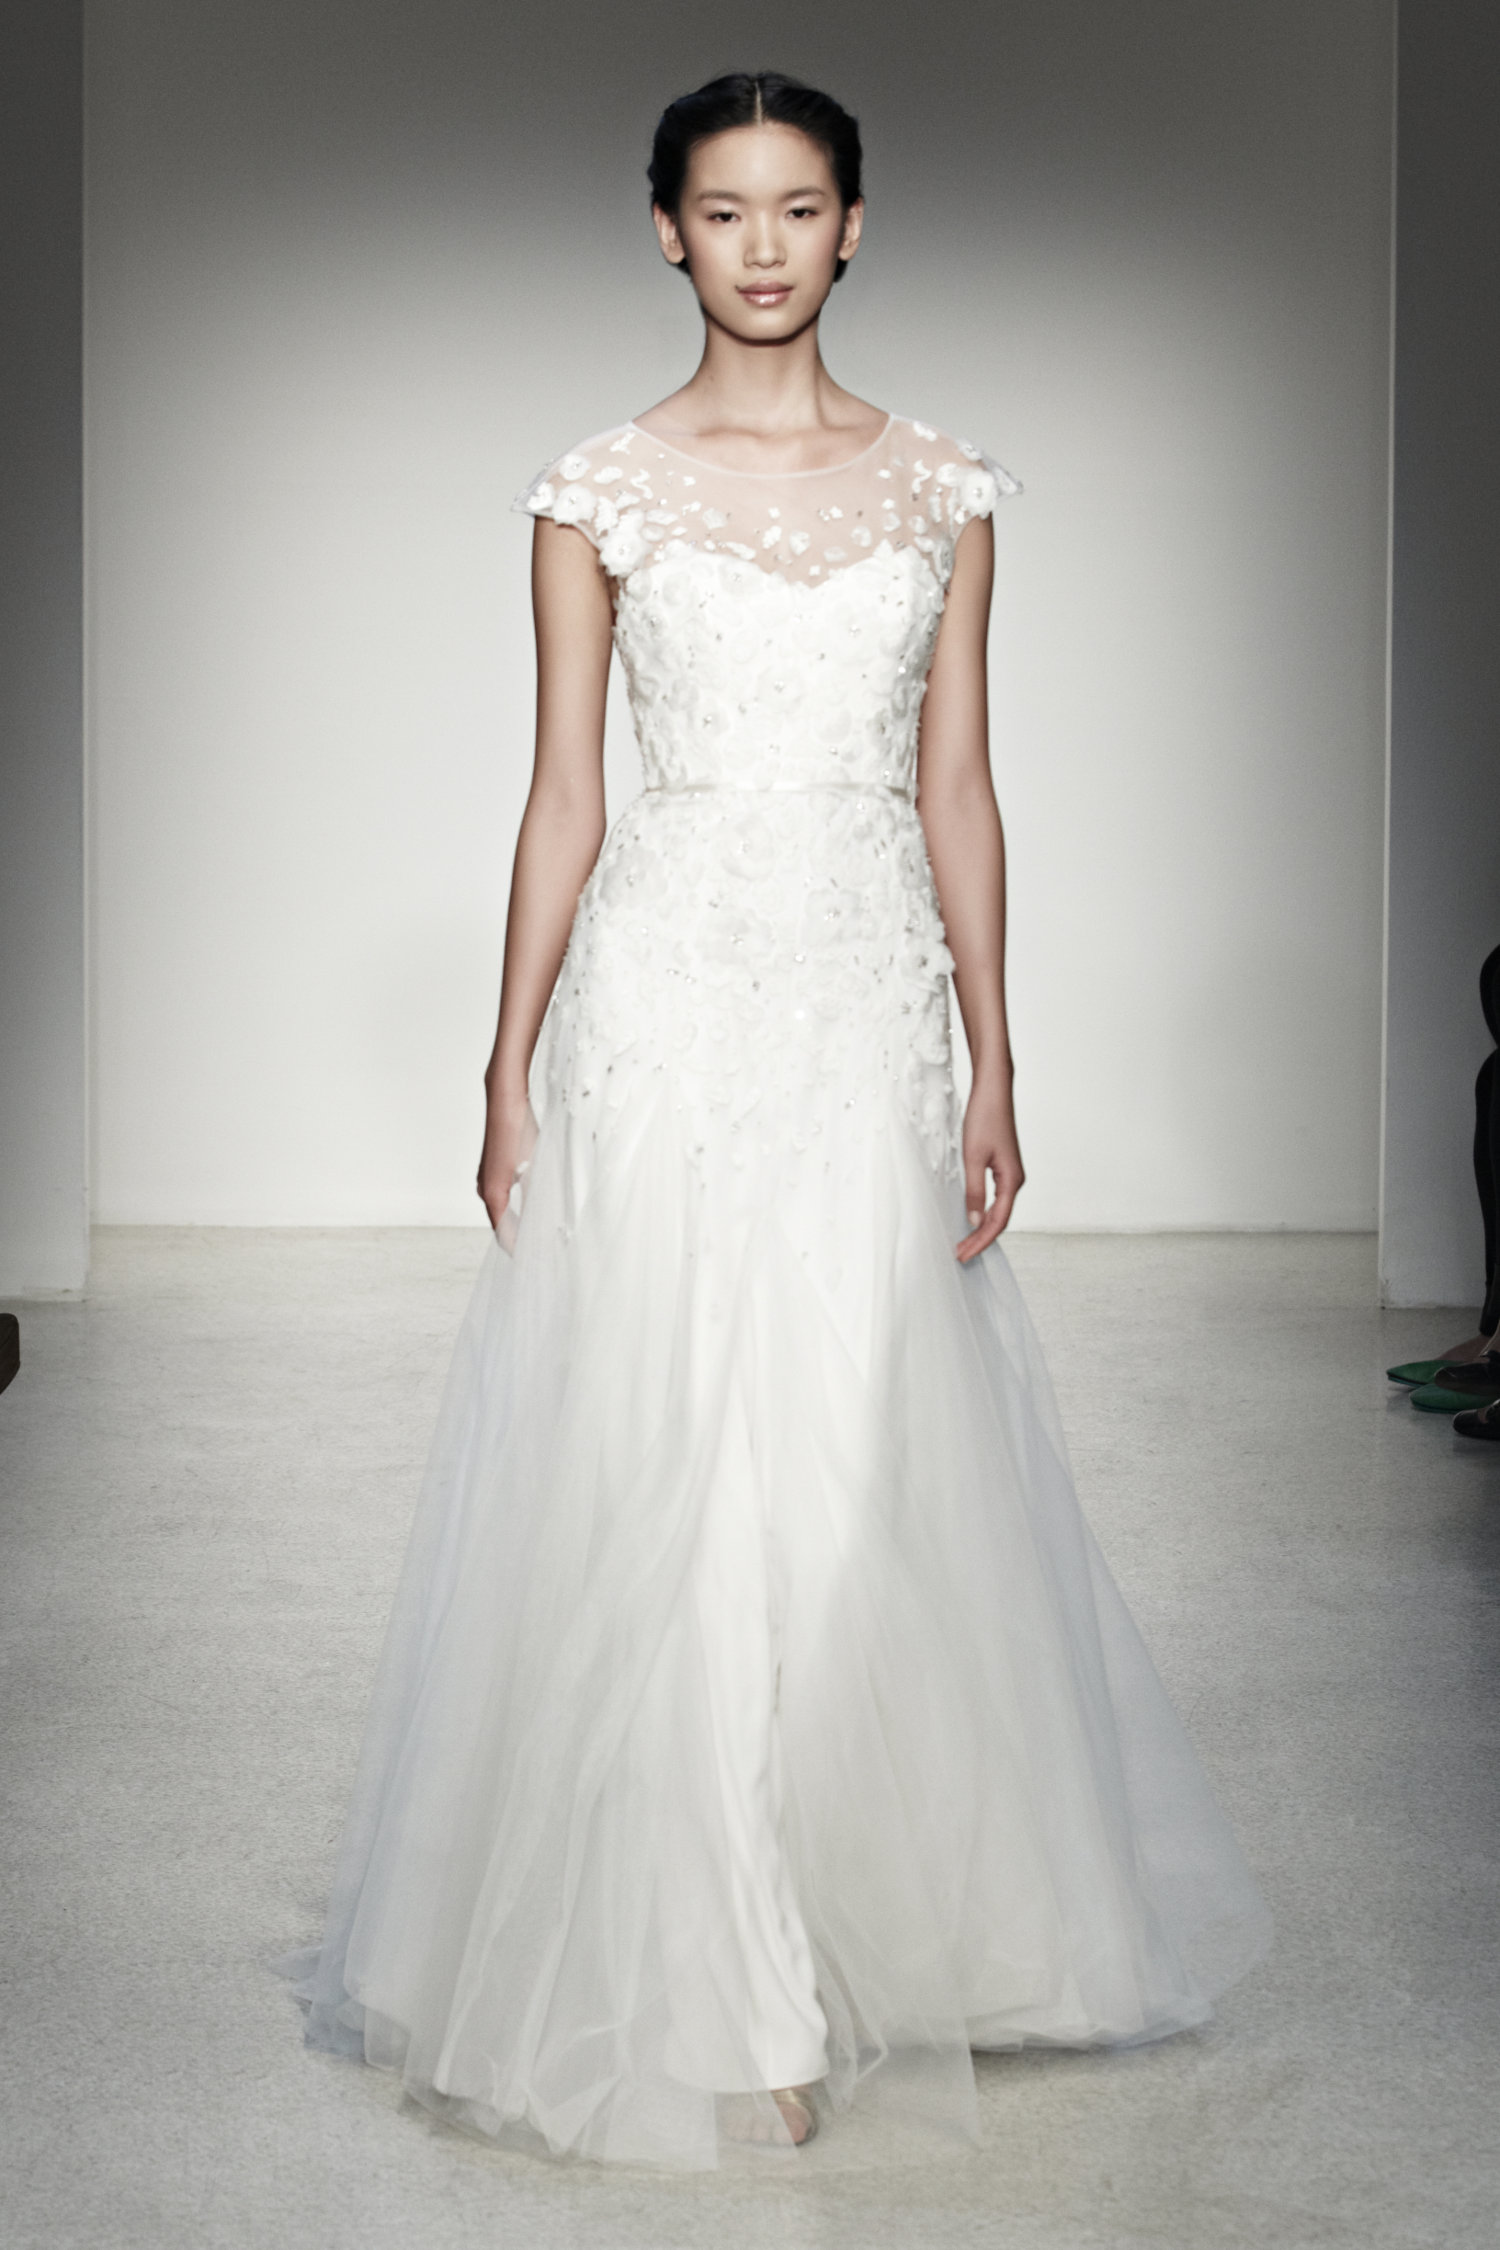 wedding dresses dallas ga wedding dresses dallas Wedding Dress Lace Bridal Gown Christos